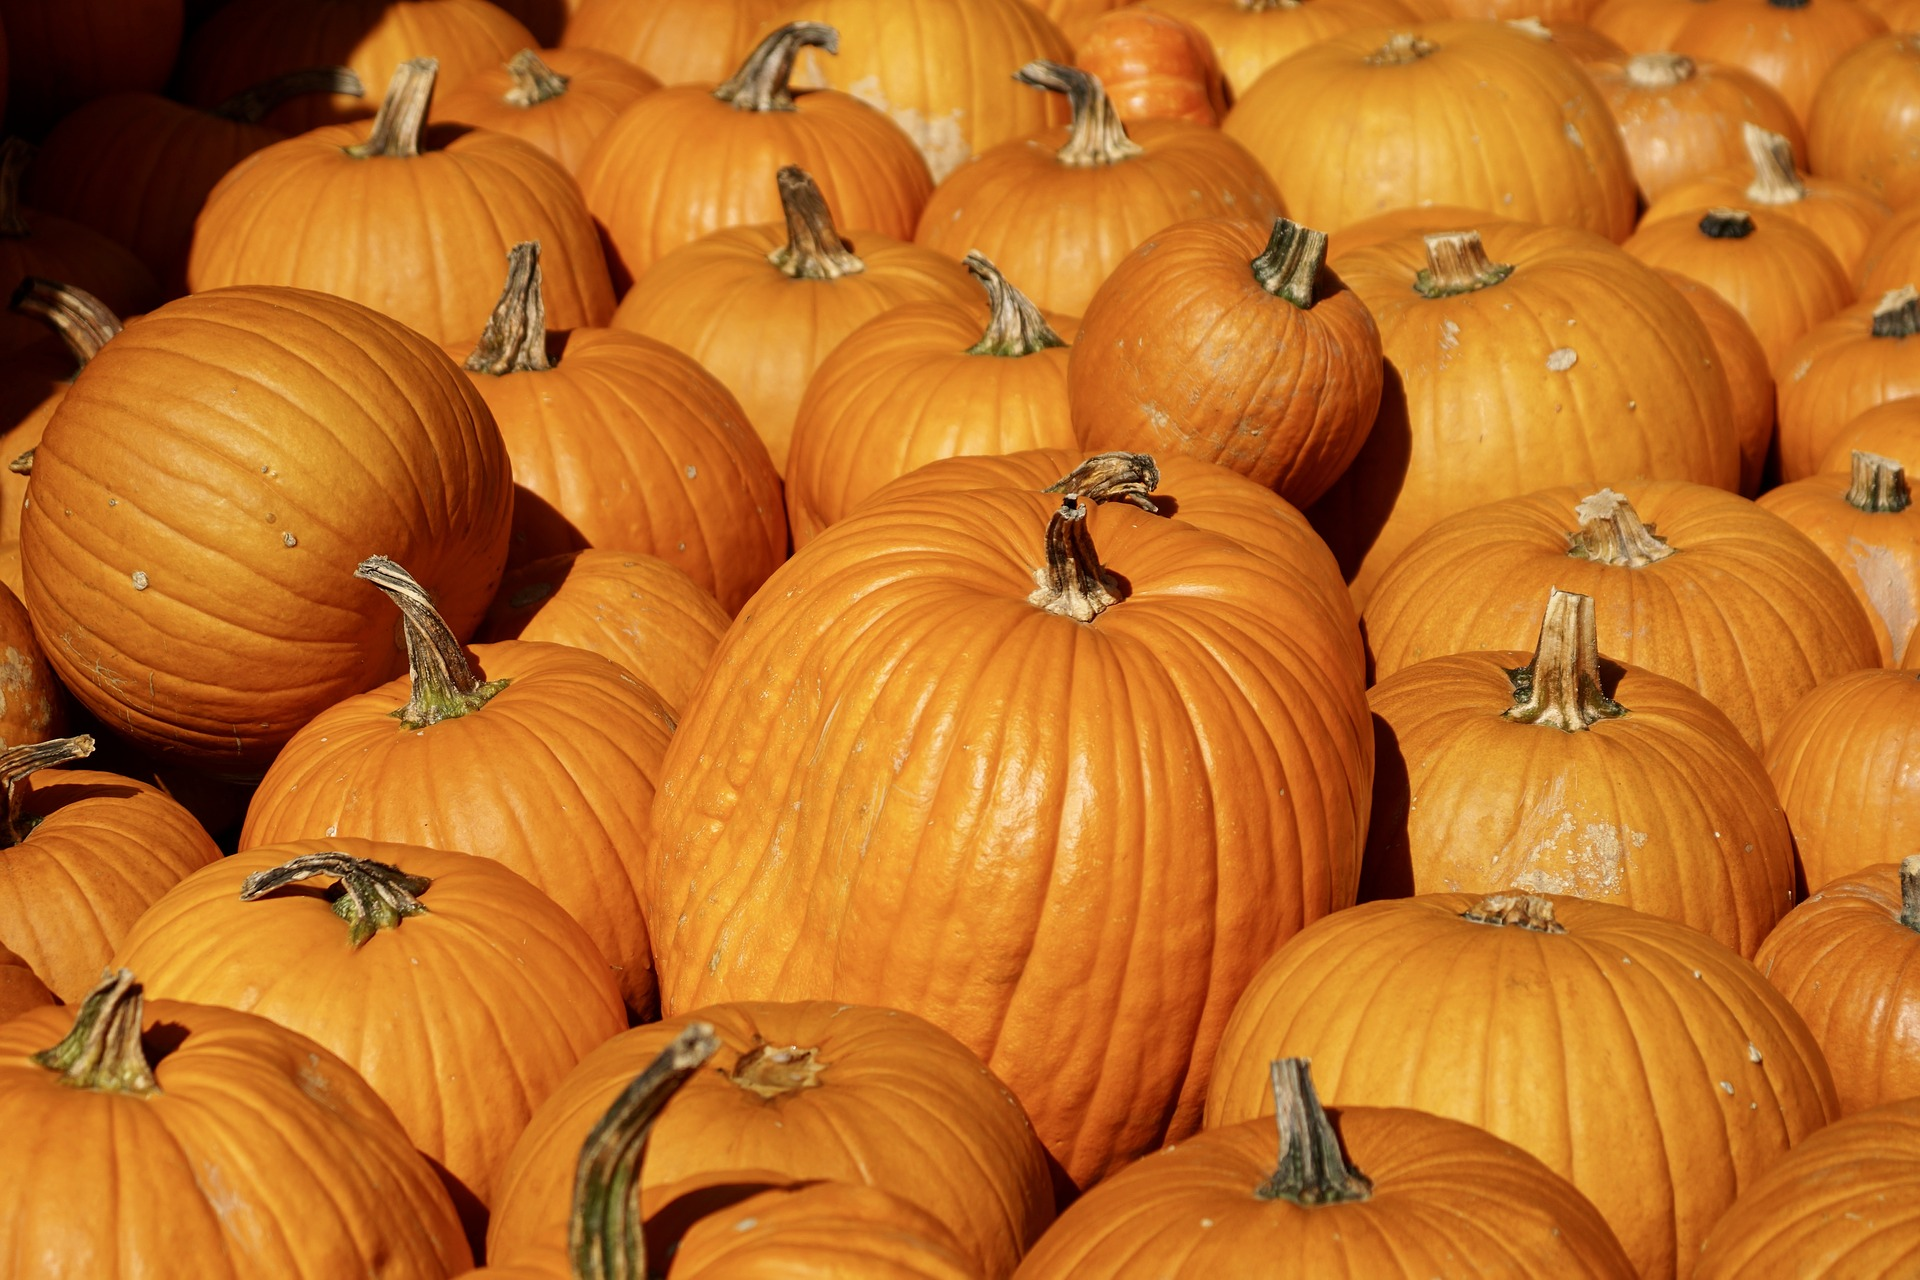 pumpkins can be used in stuffed dog toys